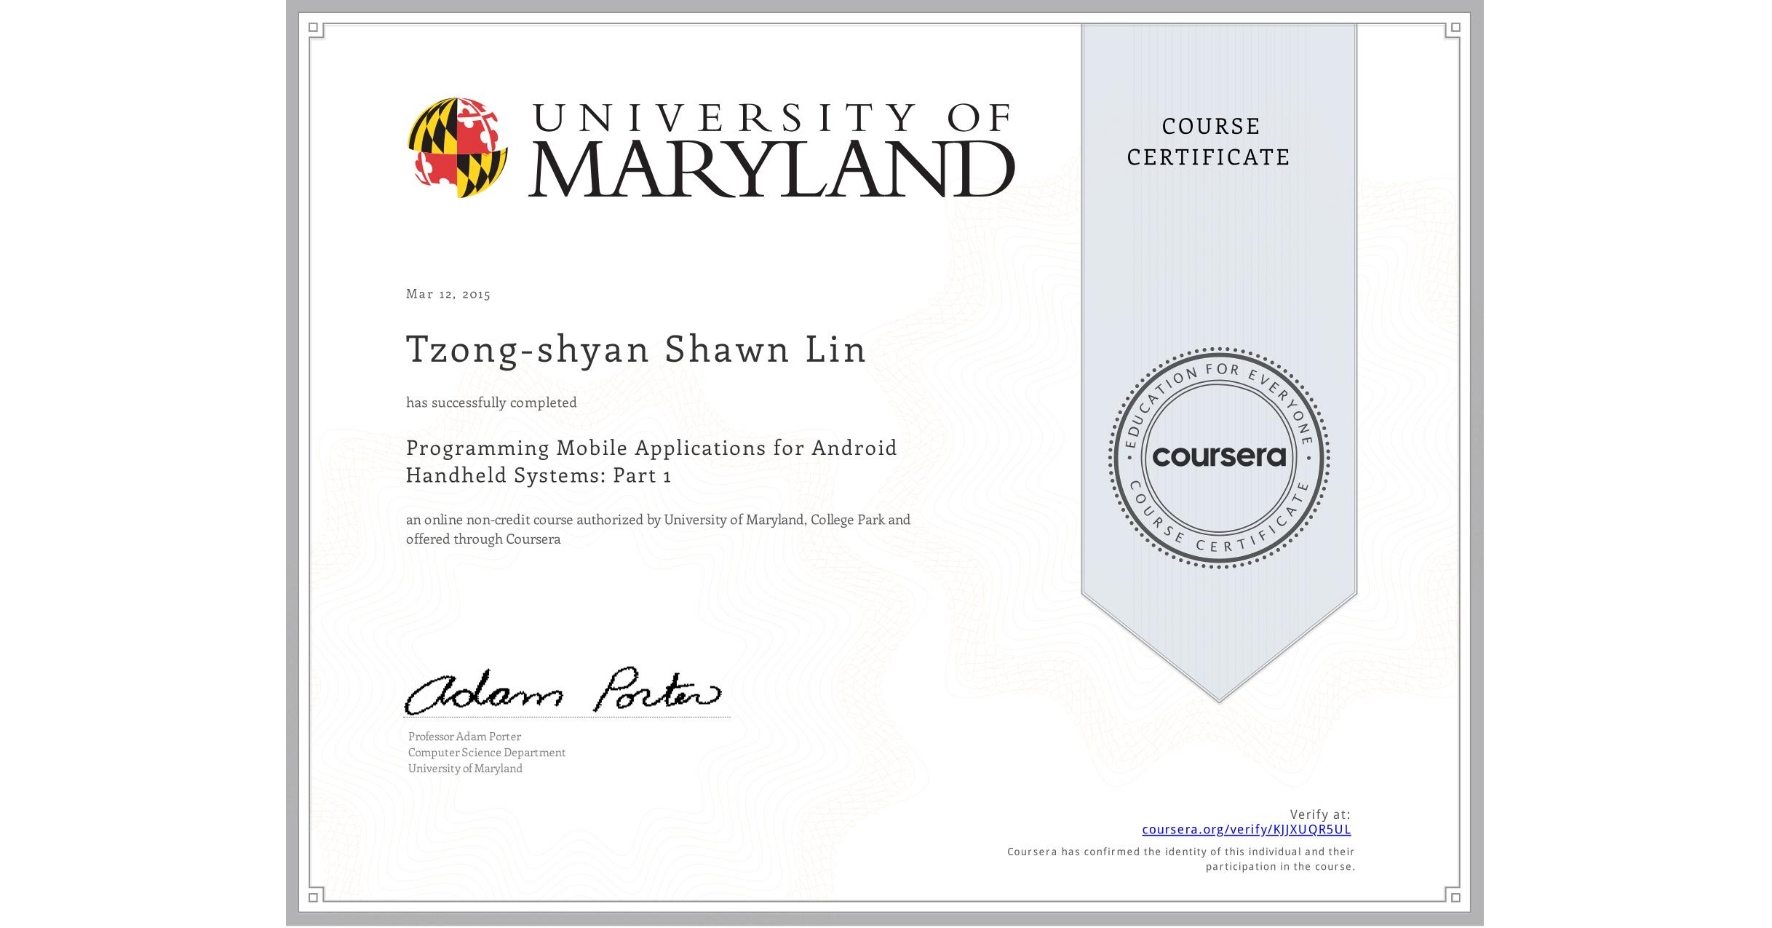 View certificate for Tzong-shyan Shawn Lin, Programming Mobile Applications for Android Handheld Systems: Part 1, an online non-credit course authorized by University of Maryland, College Park and offered through Coursera